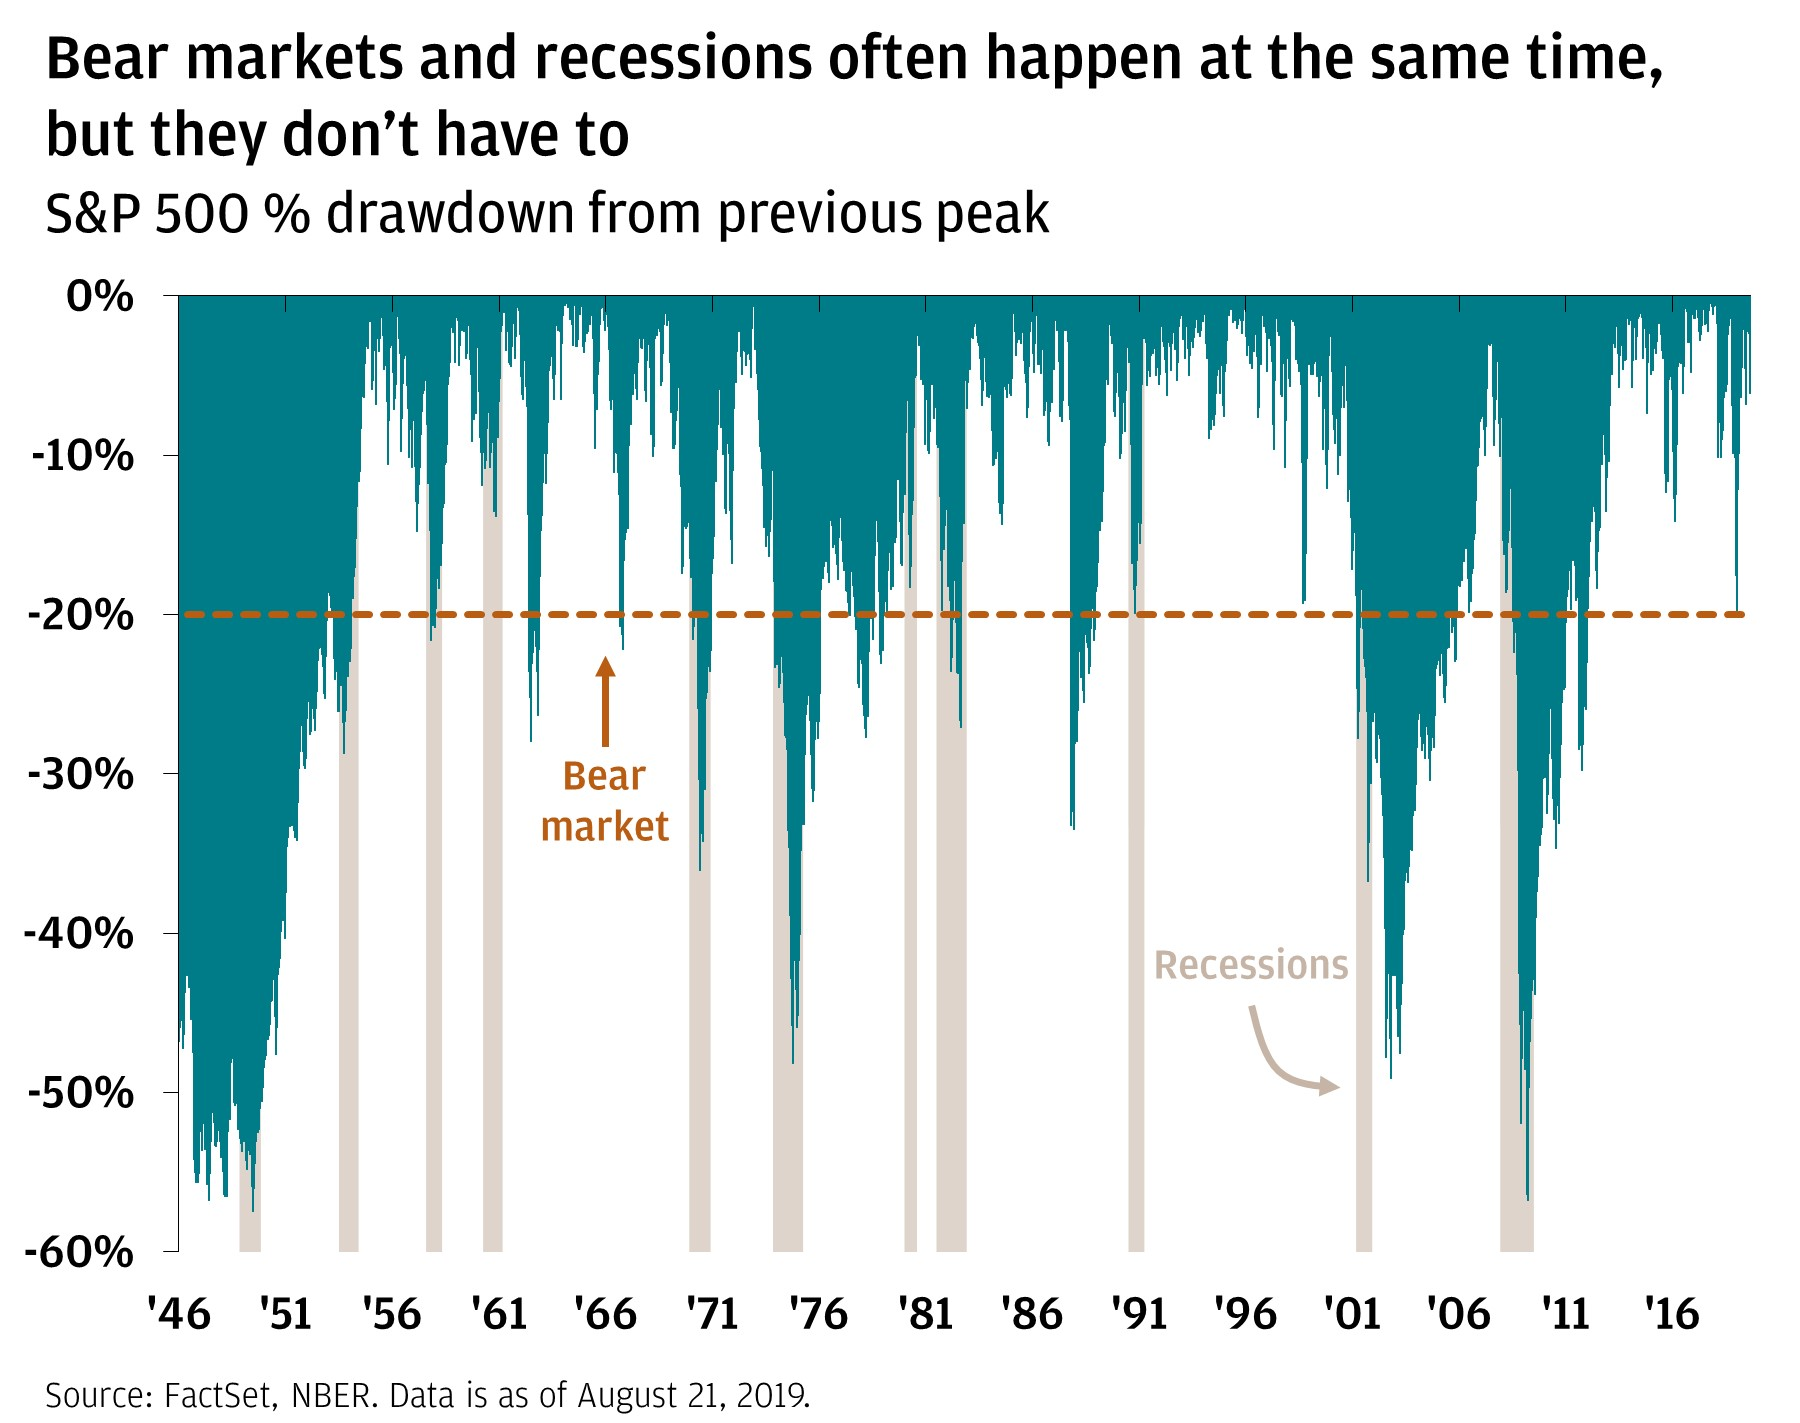 Bear markets and recessions often happen at the same time, but they don't have to